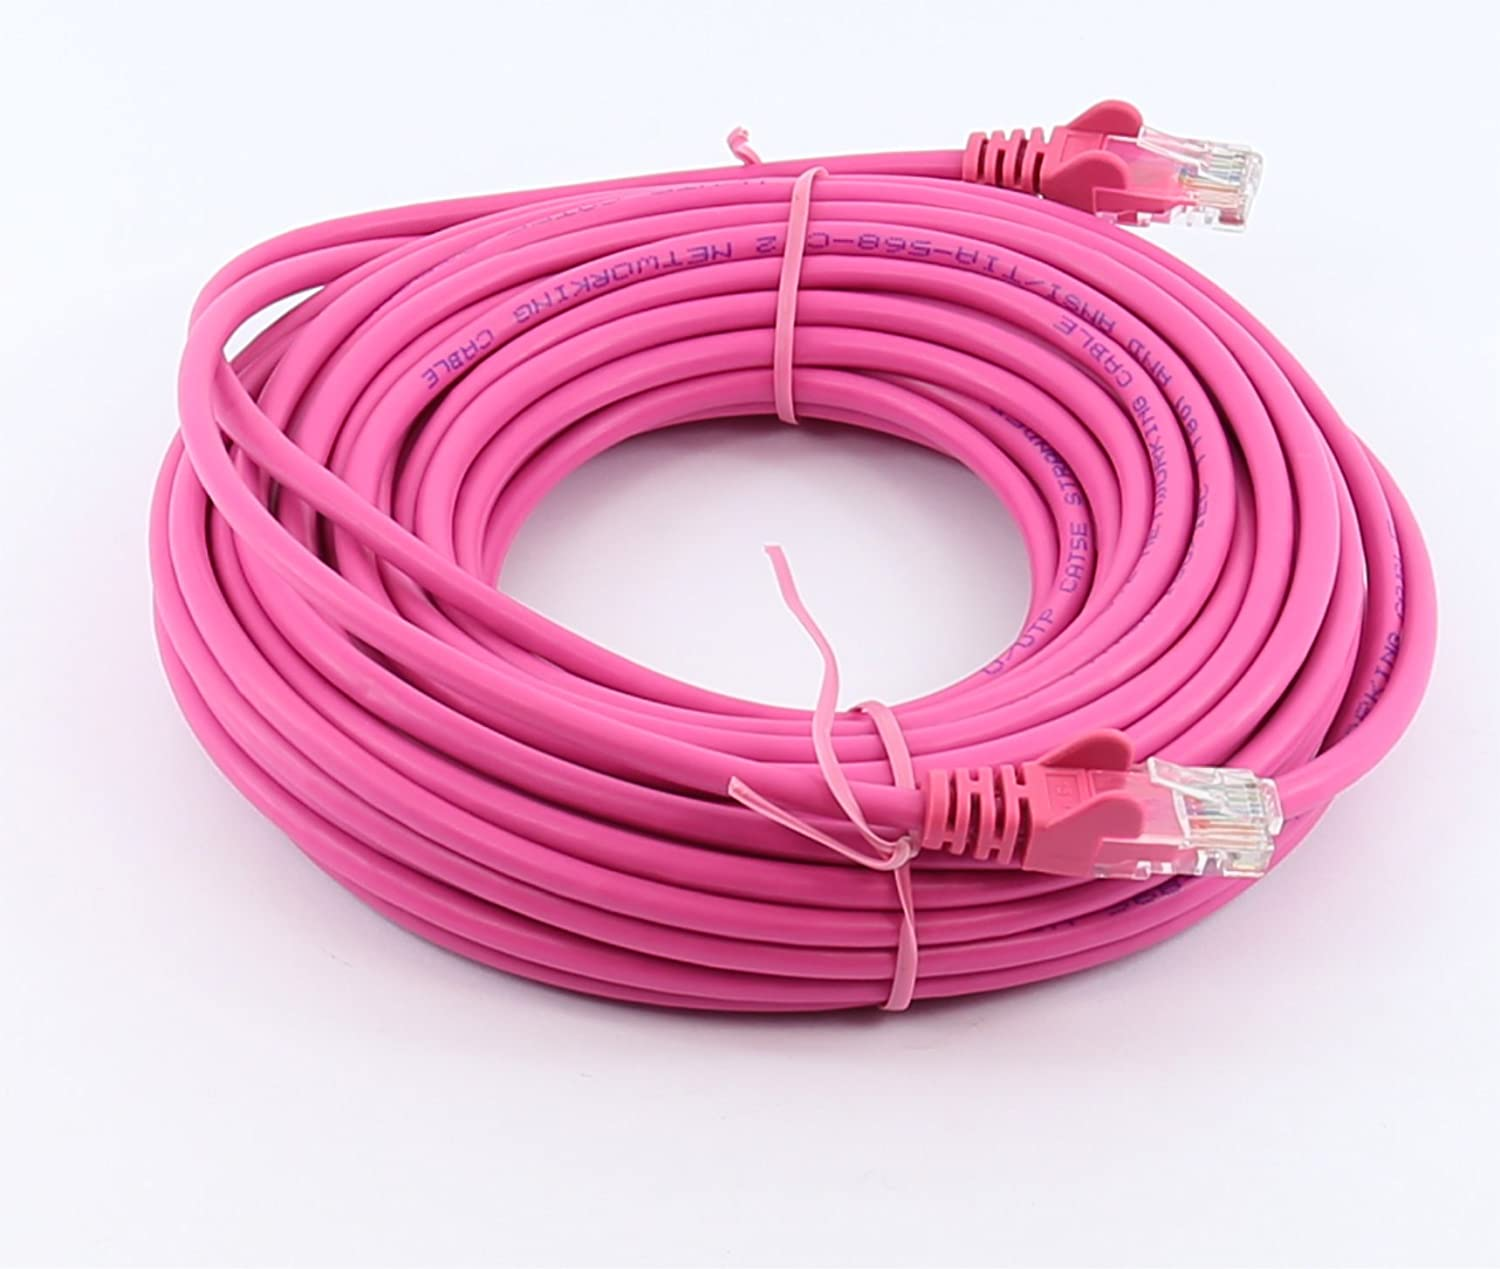 32ft 10in, Pink rhinocables Cat 5e Cat5e Ethernet RJ45 High Speed Network Cable Internet Fast Speed Lead